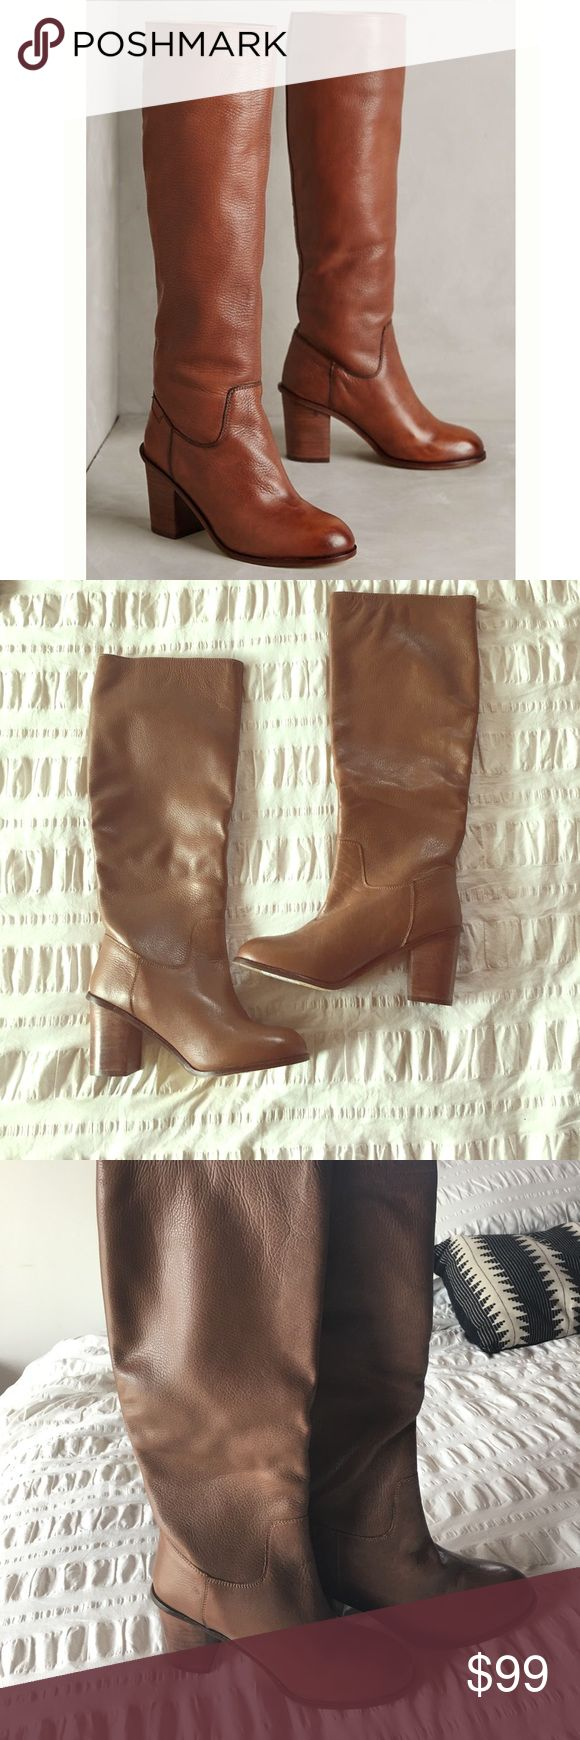 NWOT Anthropologie Lien Do by Seychelles Boots 9 NWOT Anthropologie Lien Do by Seychelles Boots 9 - worn once around the house bc I so badly wanted them to work but they are just too small for my 9 1/2 foot. Best for an 8 1/2-9. Anthropologie Shoes Heeled Boots